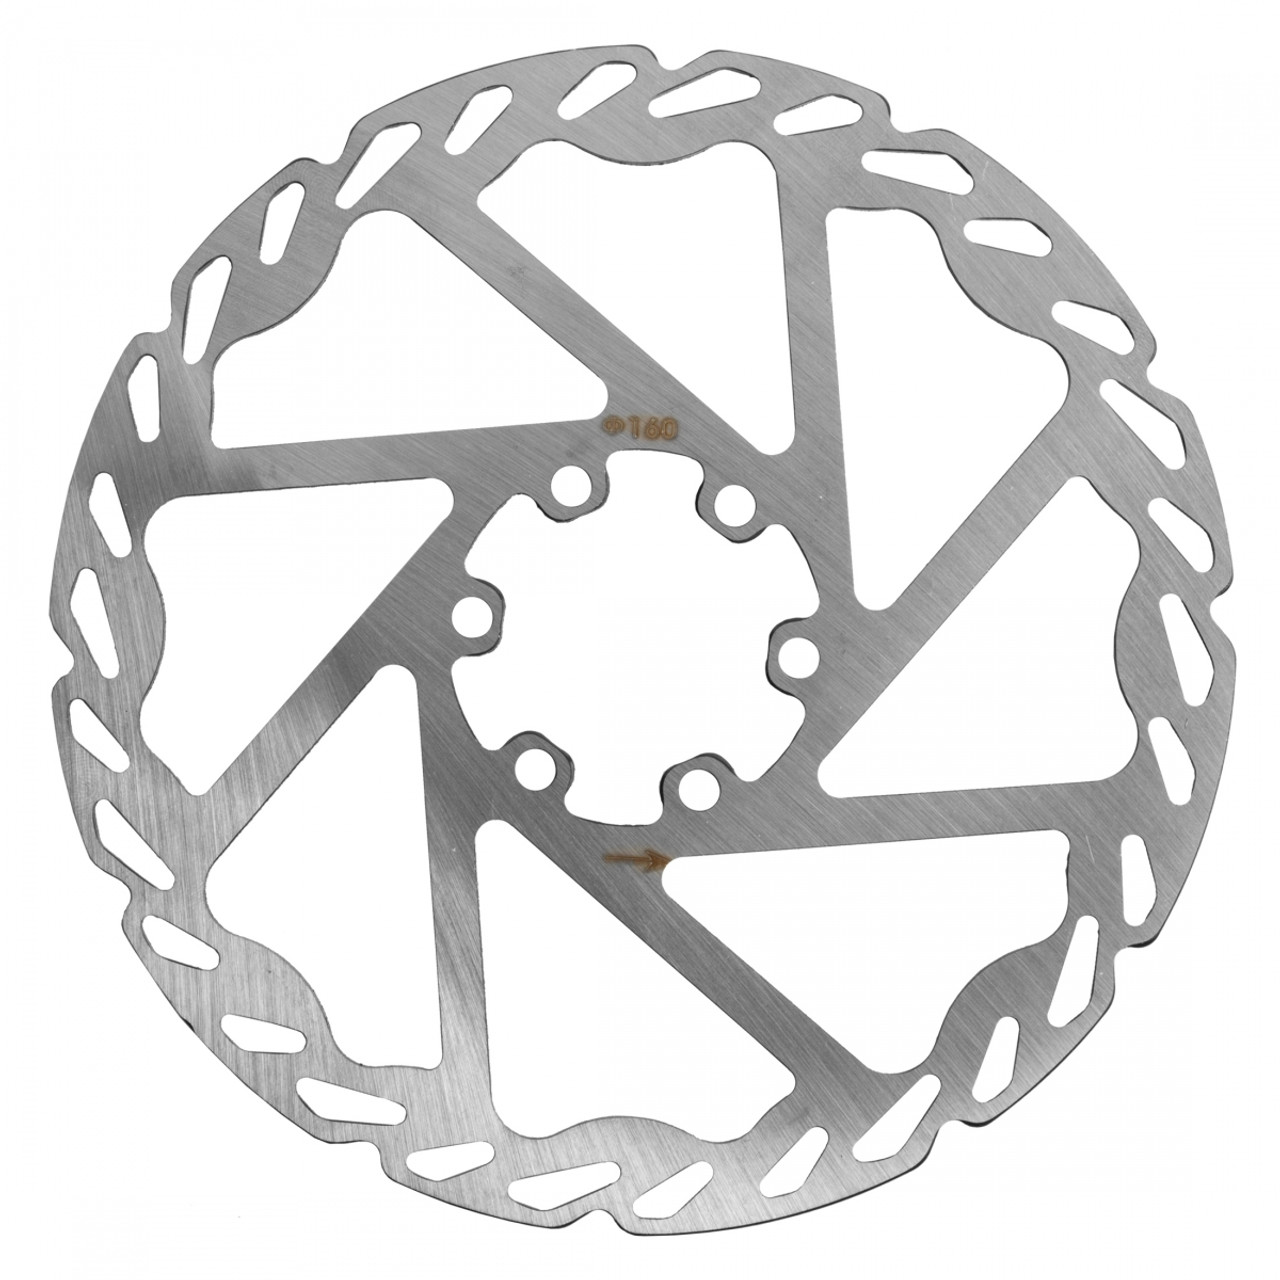 Clarks Brake Part Disc Rotor 6B Wavey 160 Sl